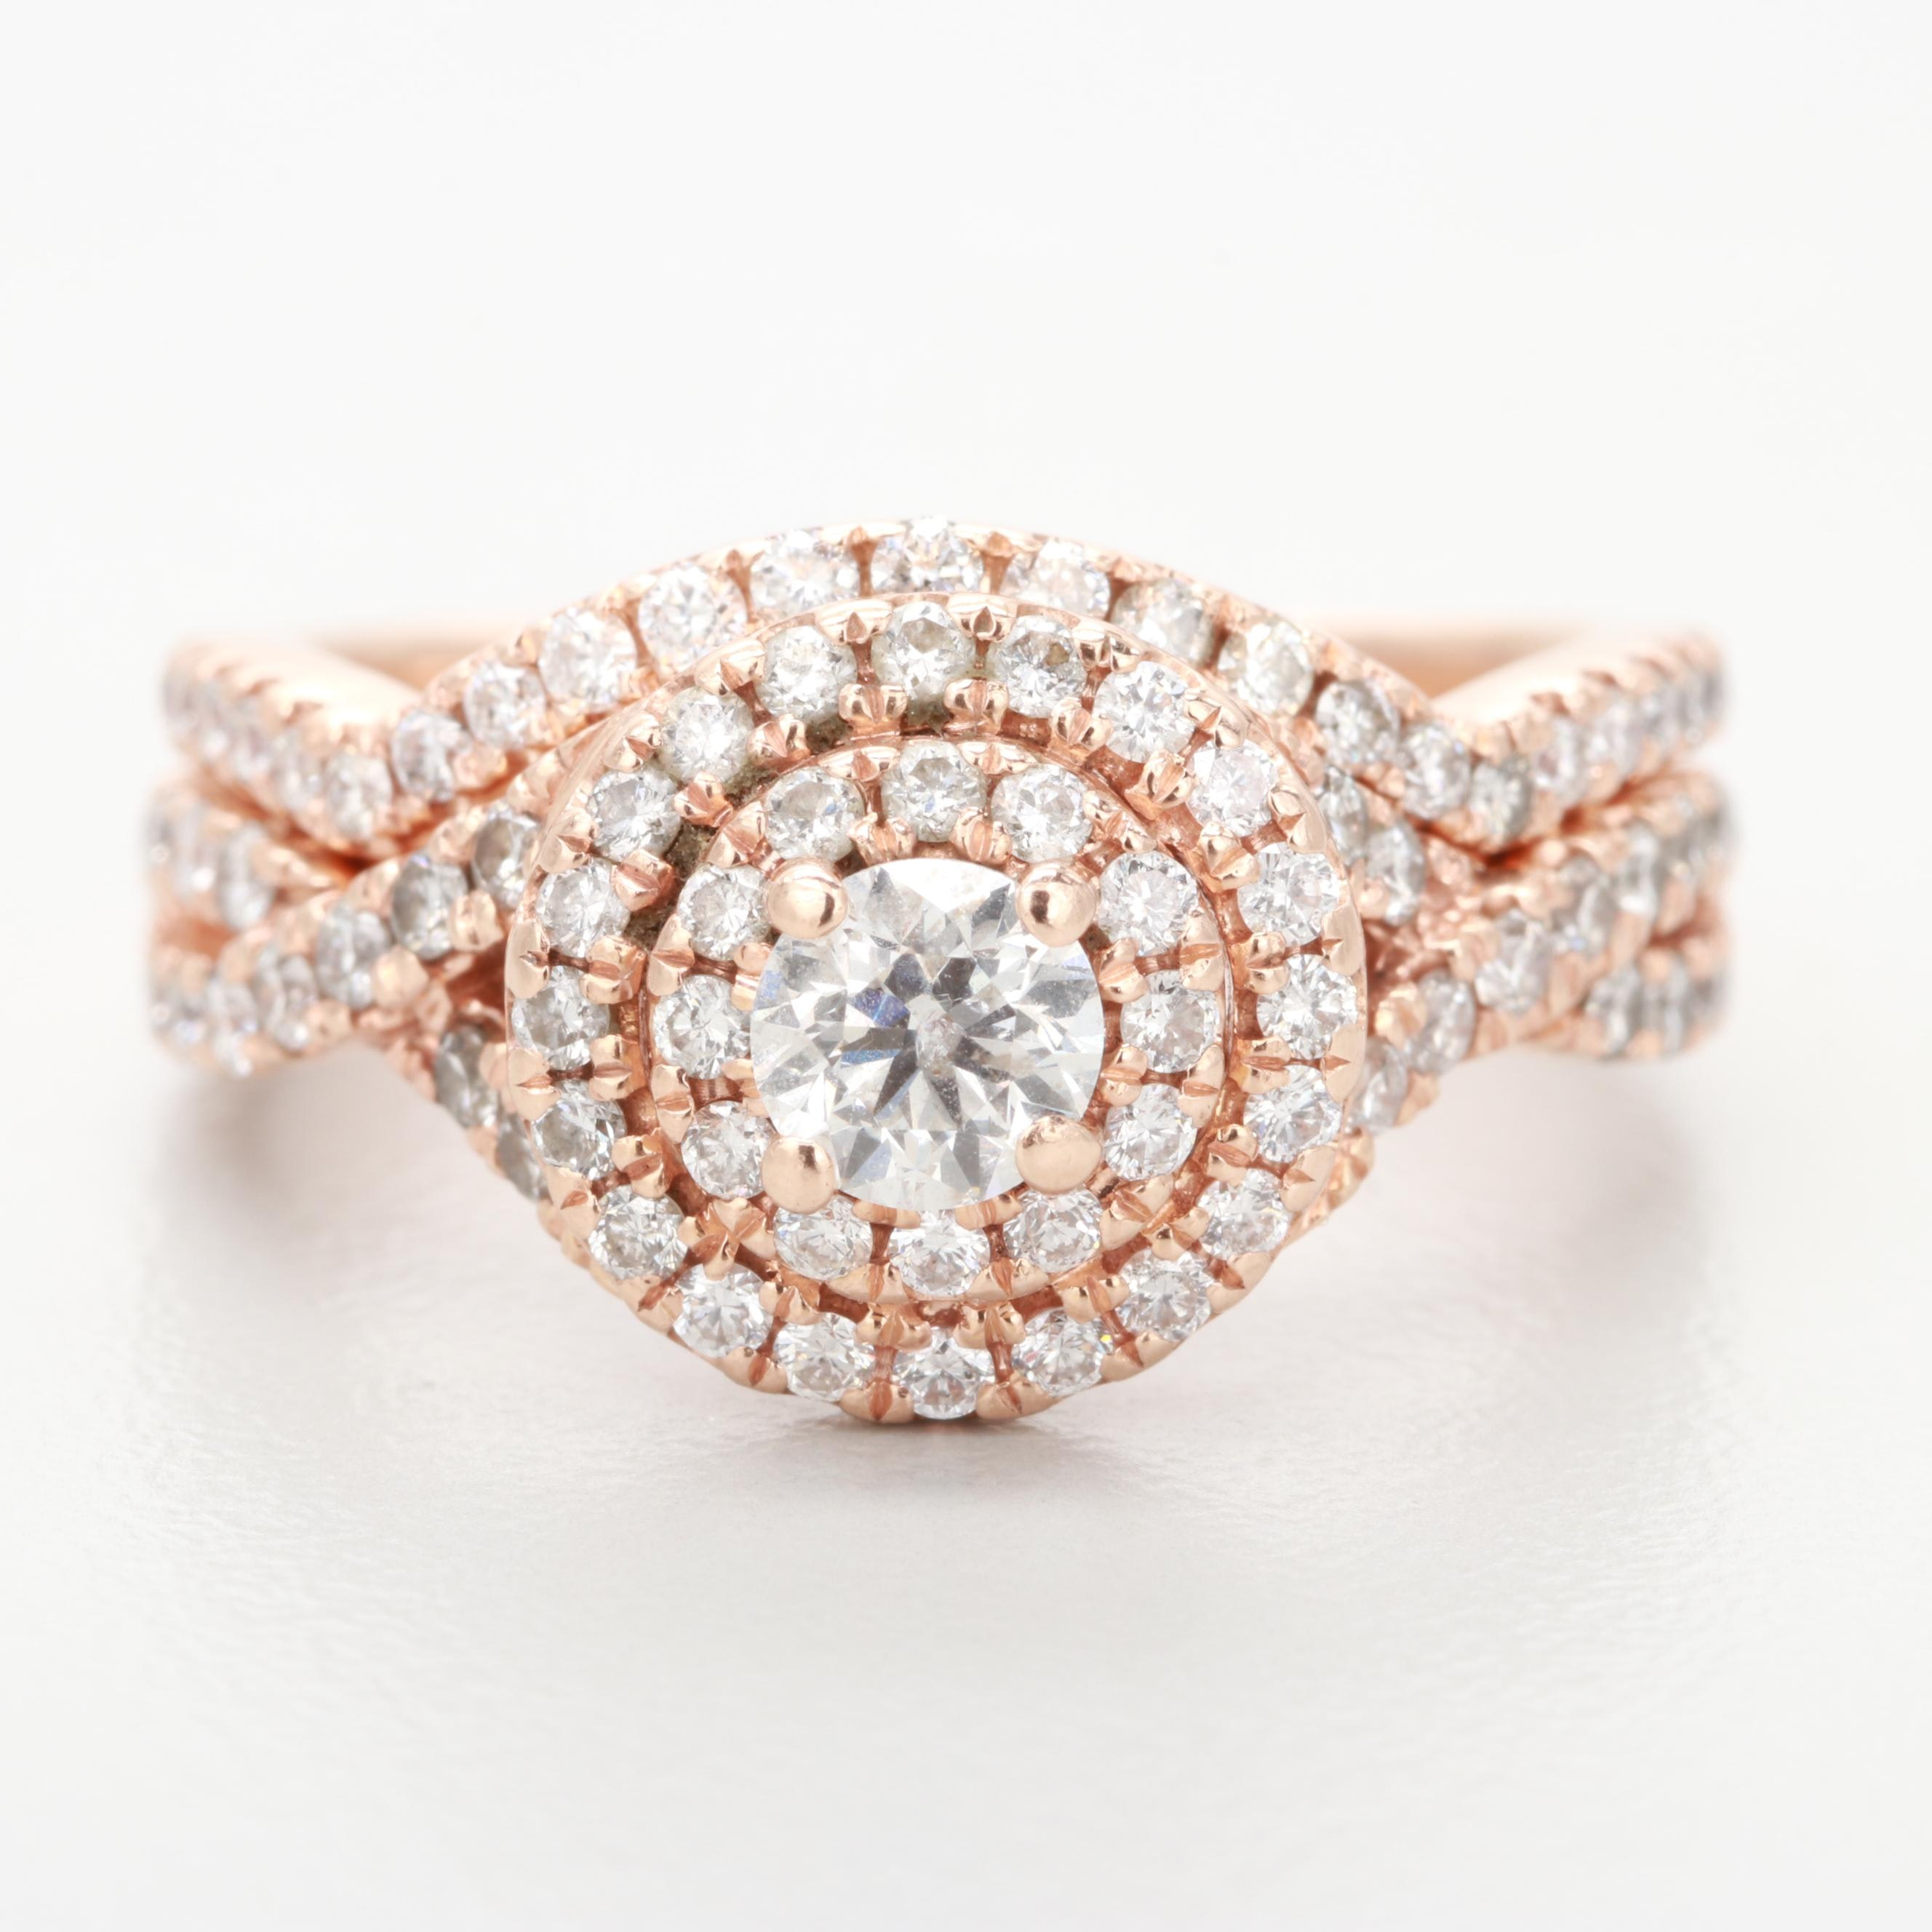 Neil Lane 14K Rose Gold Diamond Bridal Ring Set